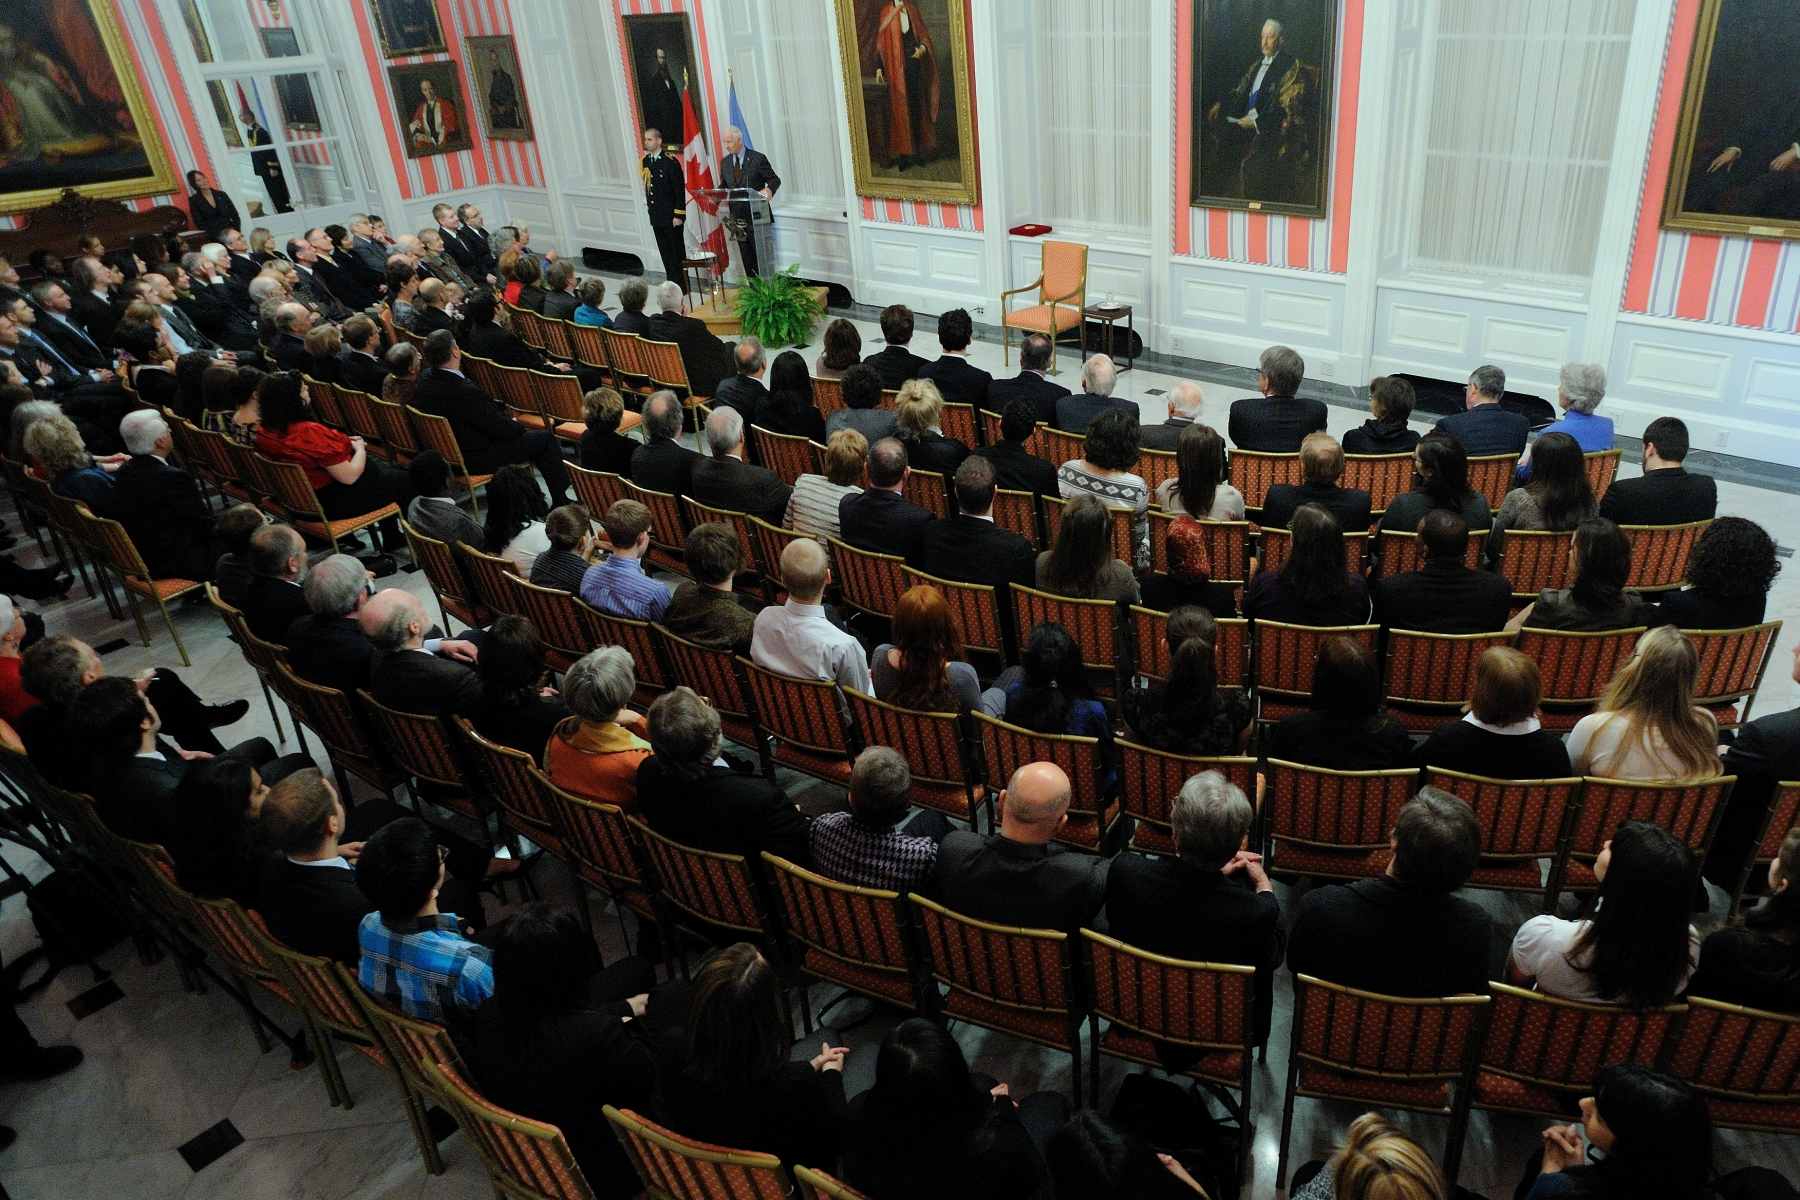 His Excellency the Right Honourable David Johnston, Governor General of Canada, and Honorary Patron of the United Nations Association in Canada (UNA-Canada), presented the 26th Pearson Peace Medal to Ernie Regehr, O.C., during a ceremony at Rideau Hall, on January 21, 2011.